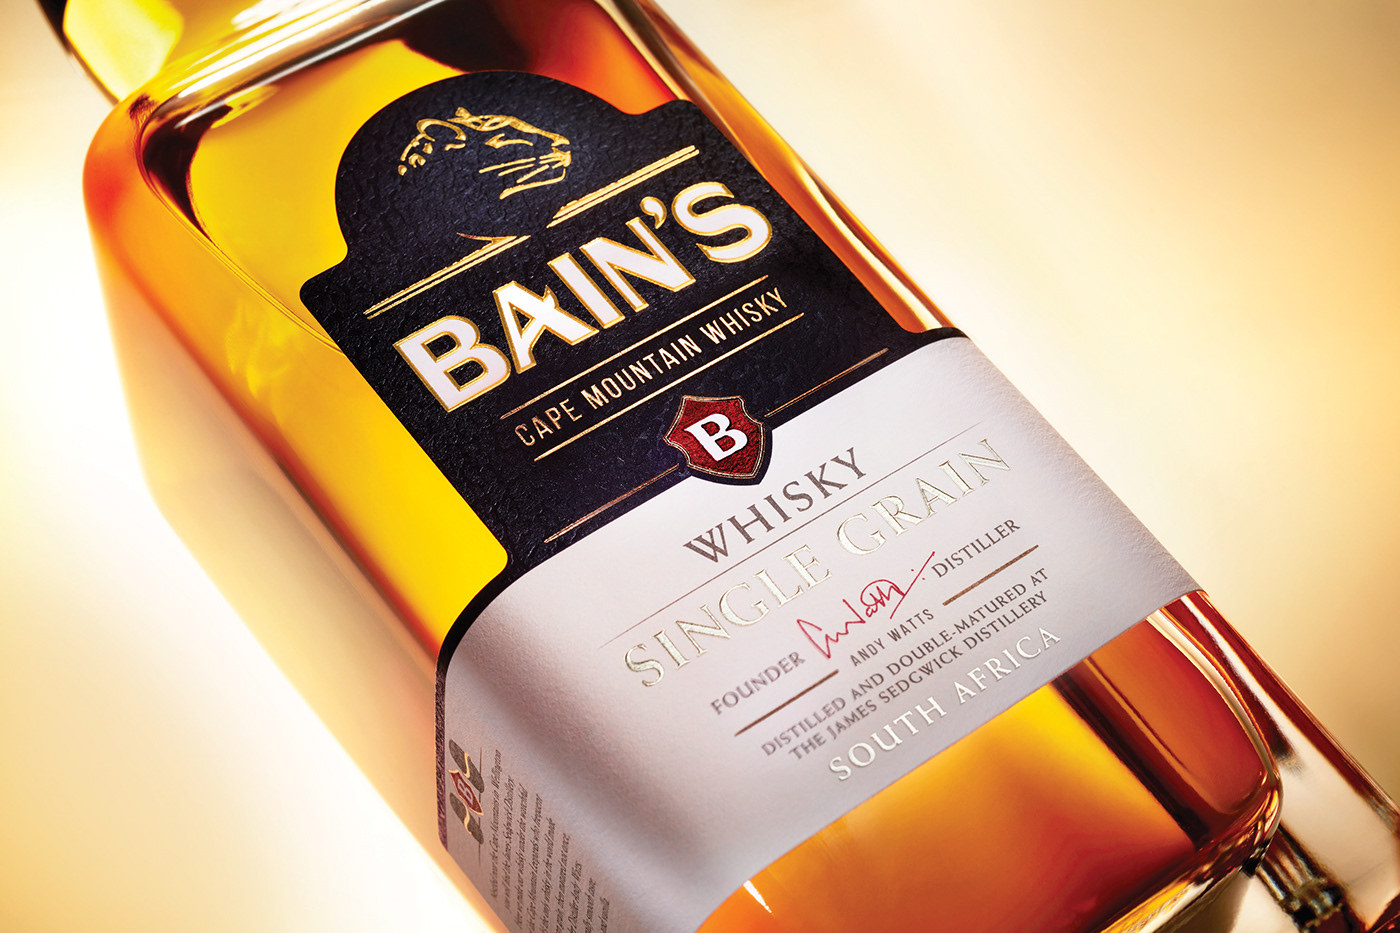 Redesign of Bain's Cape Mountain Whisky